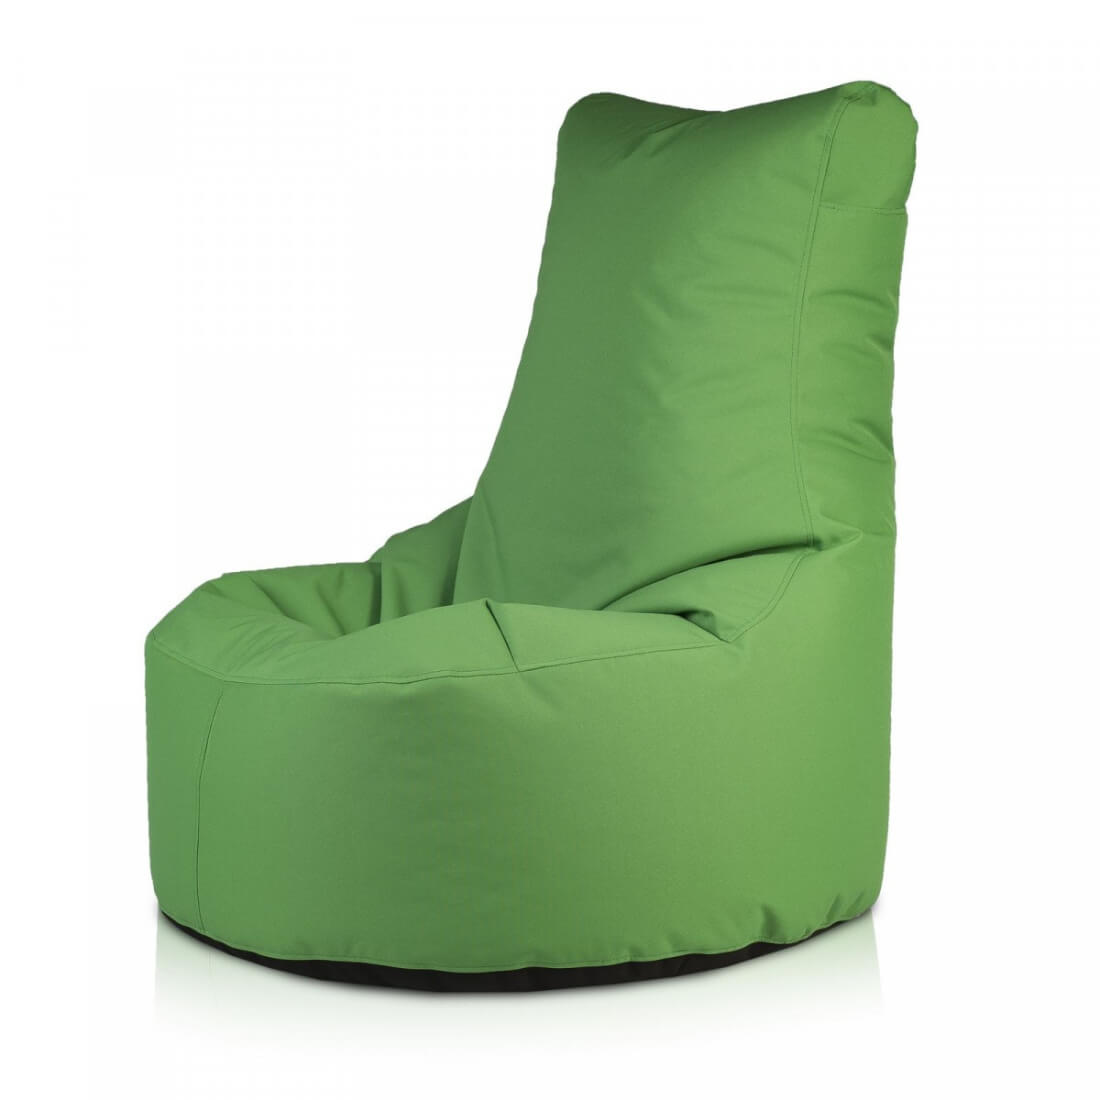 Seat Outdoor m9